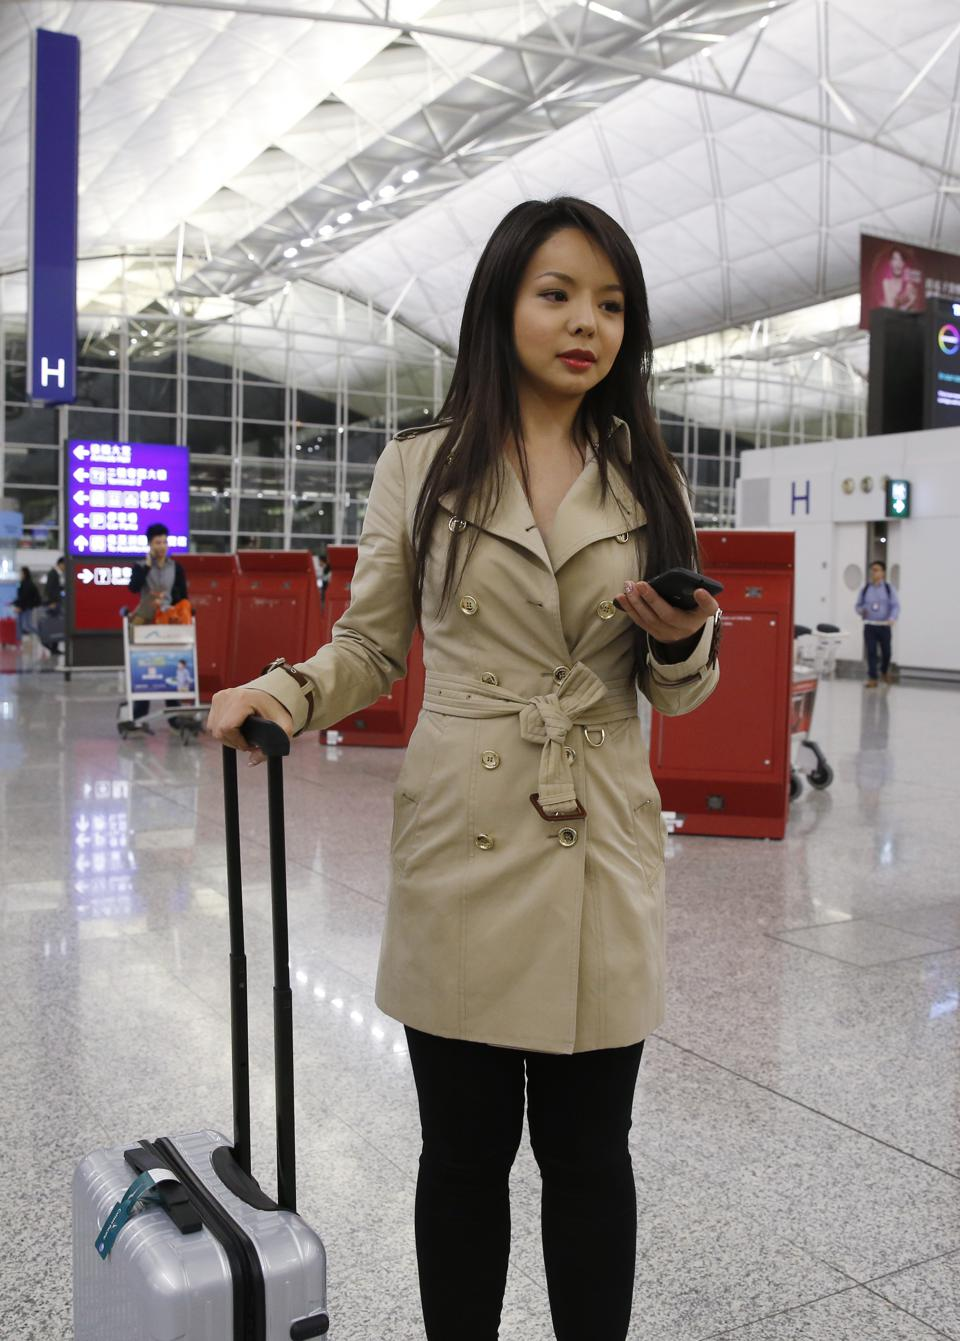 Miss Canada, Barred From China To Compete For Miss World, Now Free To Attack Abuses